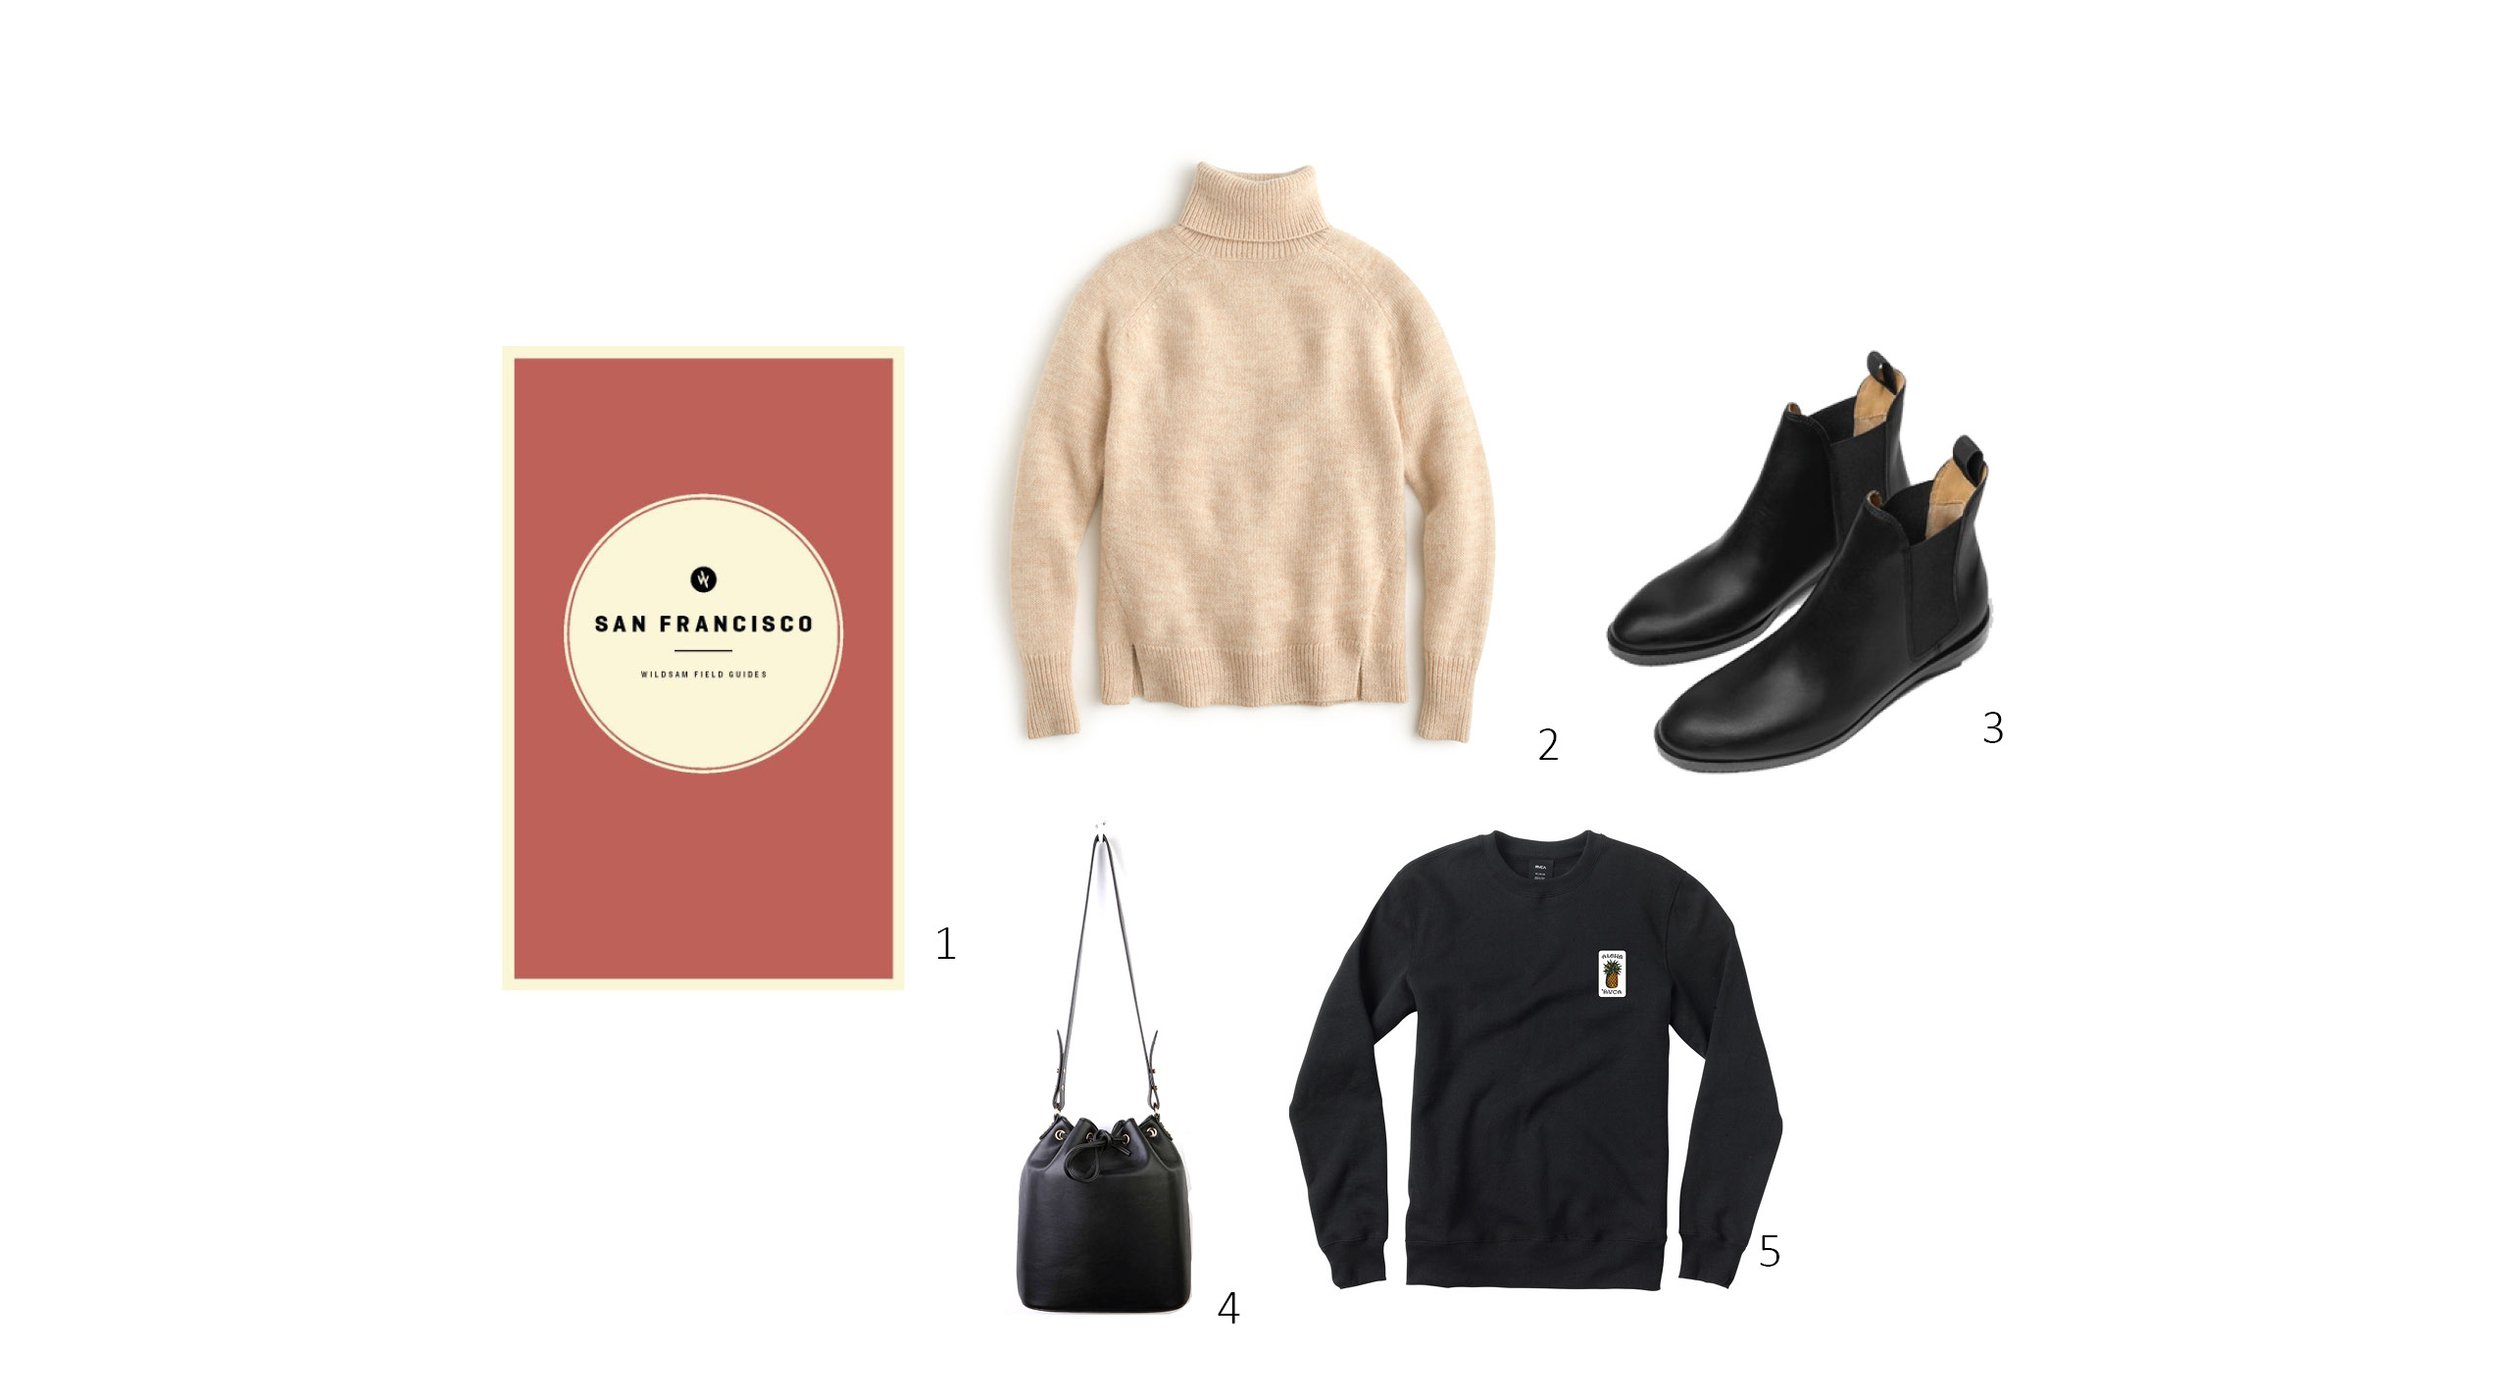 January Edit 1.  Wildsam San Francisco  $18, 2.  JCrew Turtleneck Sweater  $48, 3.  Everlane Chelsea Boots  $235, 4.  Urban Outfitters Cooperative Structured Bucket Bag  $44, 5.  RVCA Archy Fleece  $68